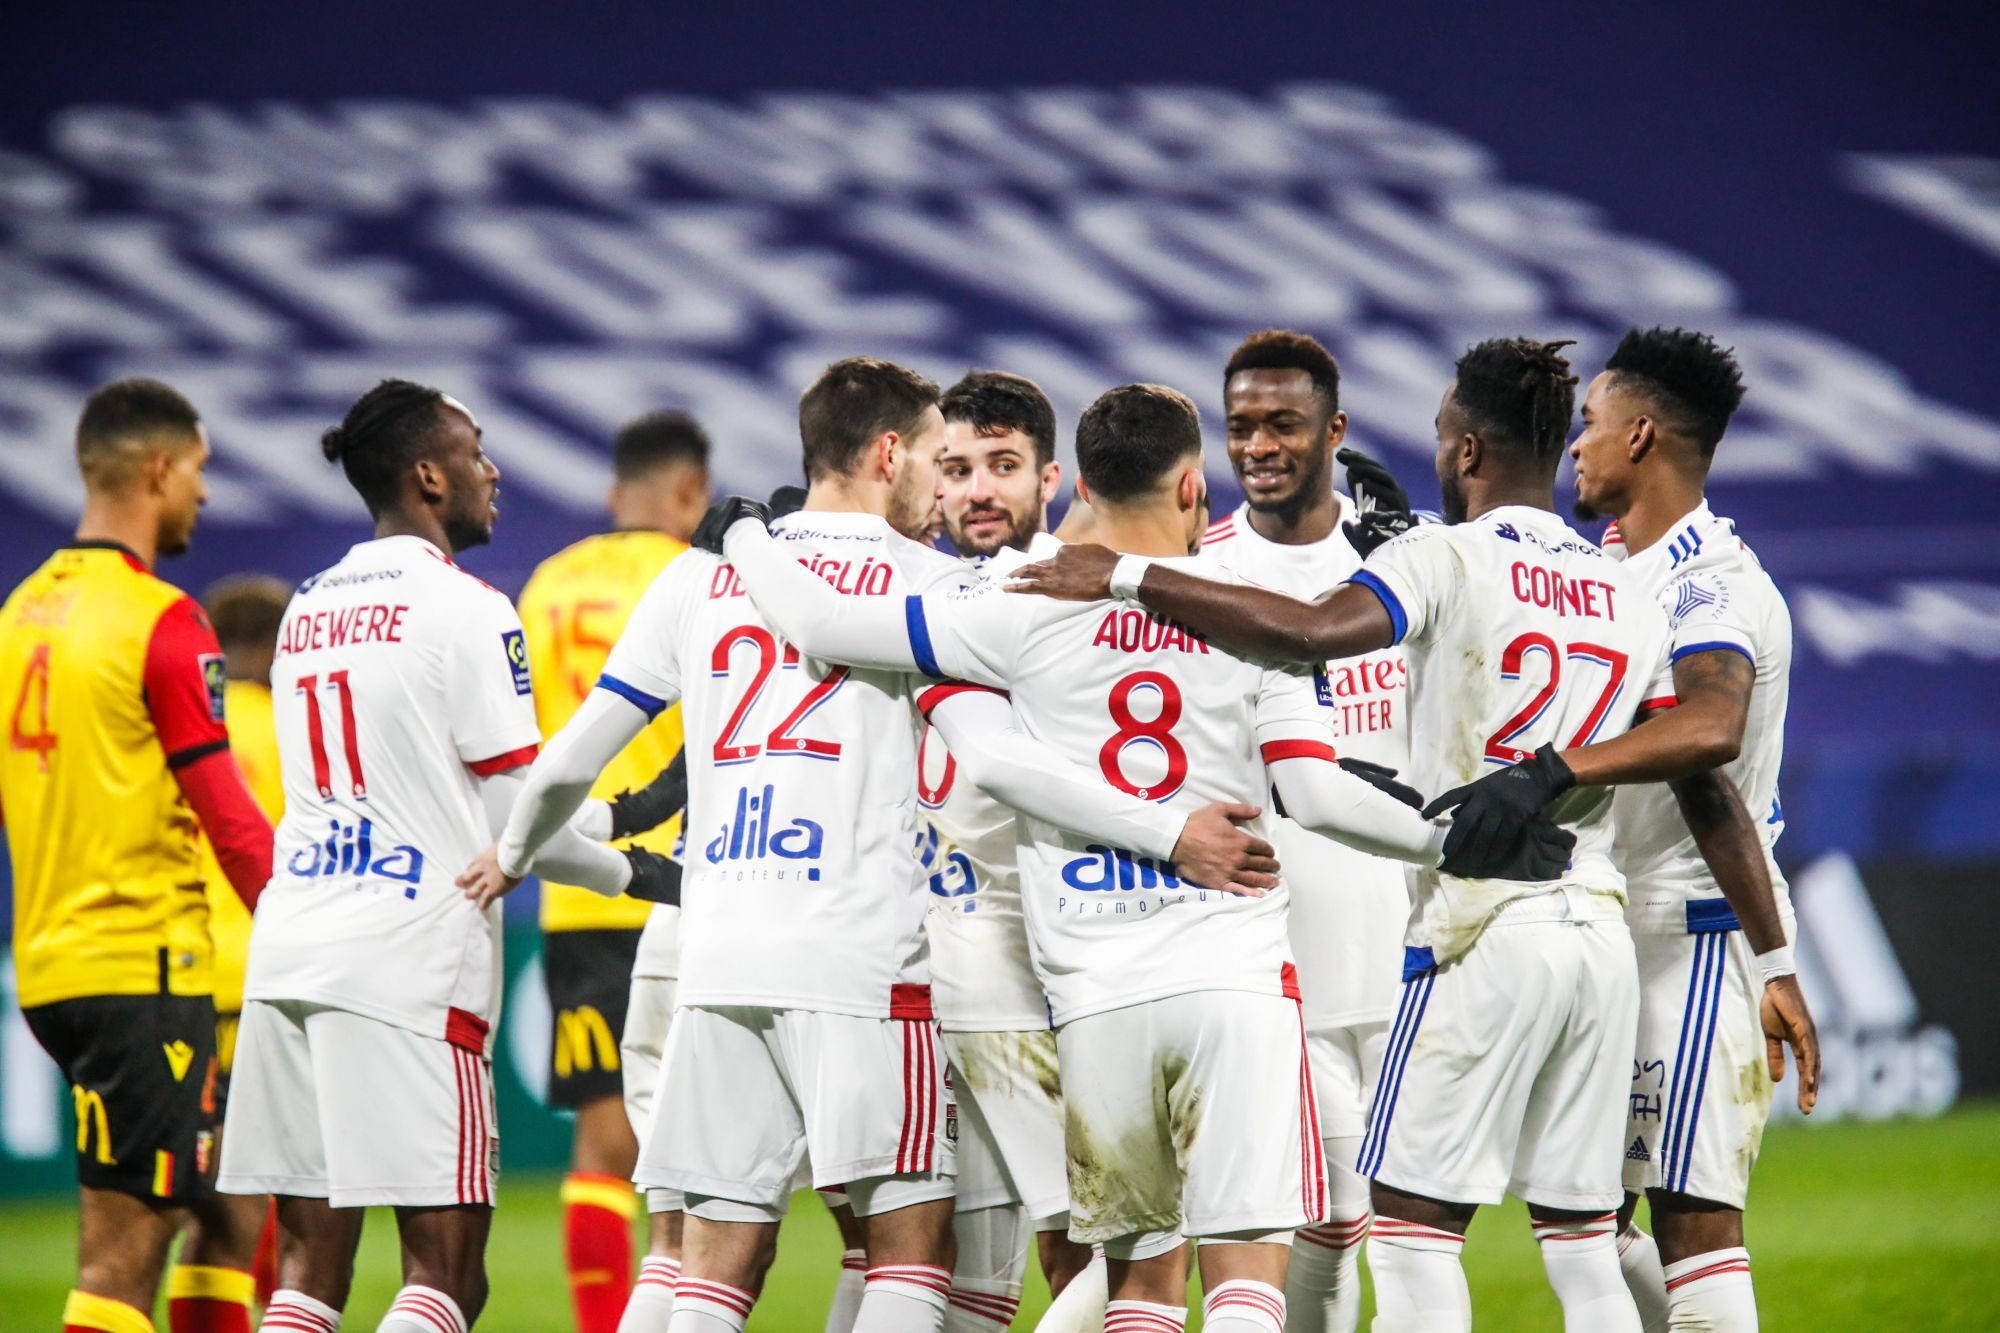 [OL 3-2 RCL] Trois points à l'arraché